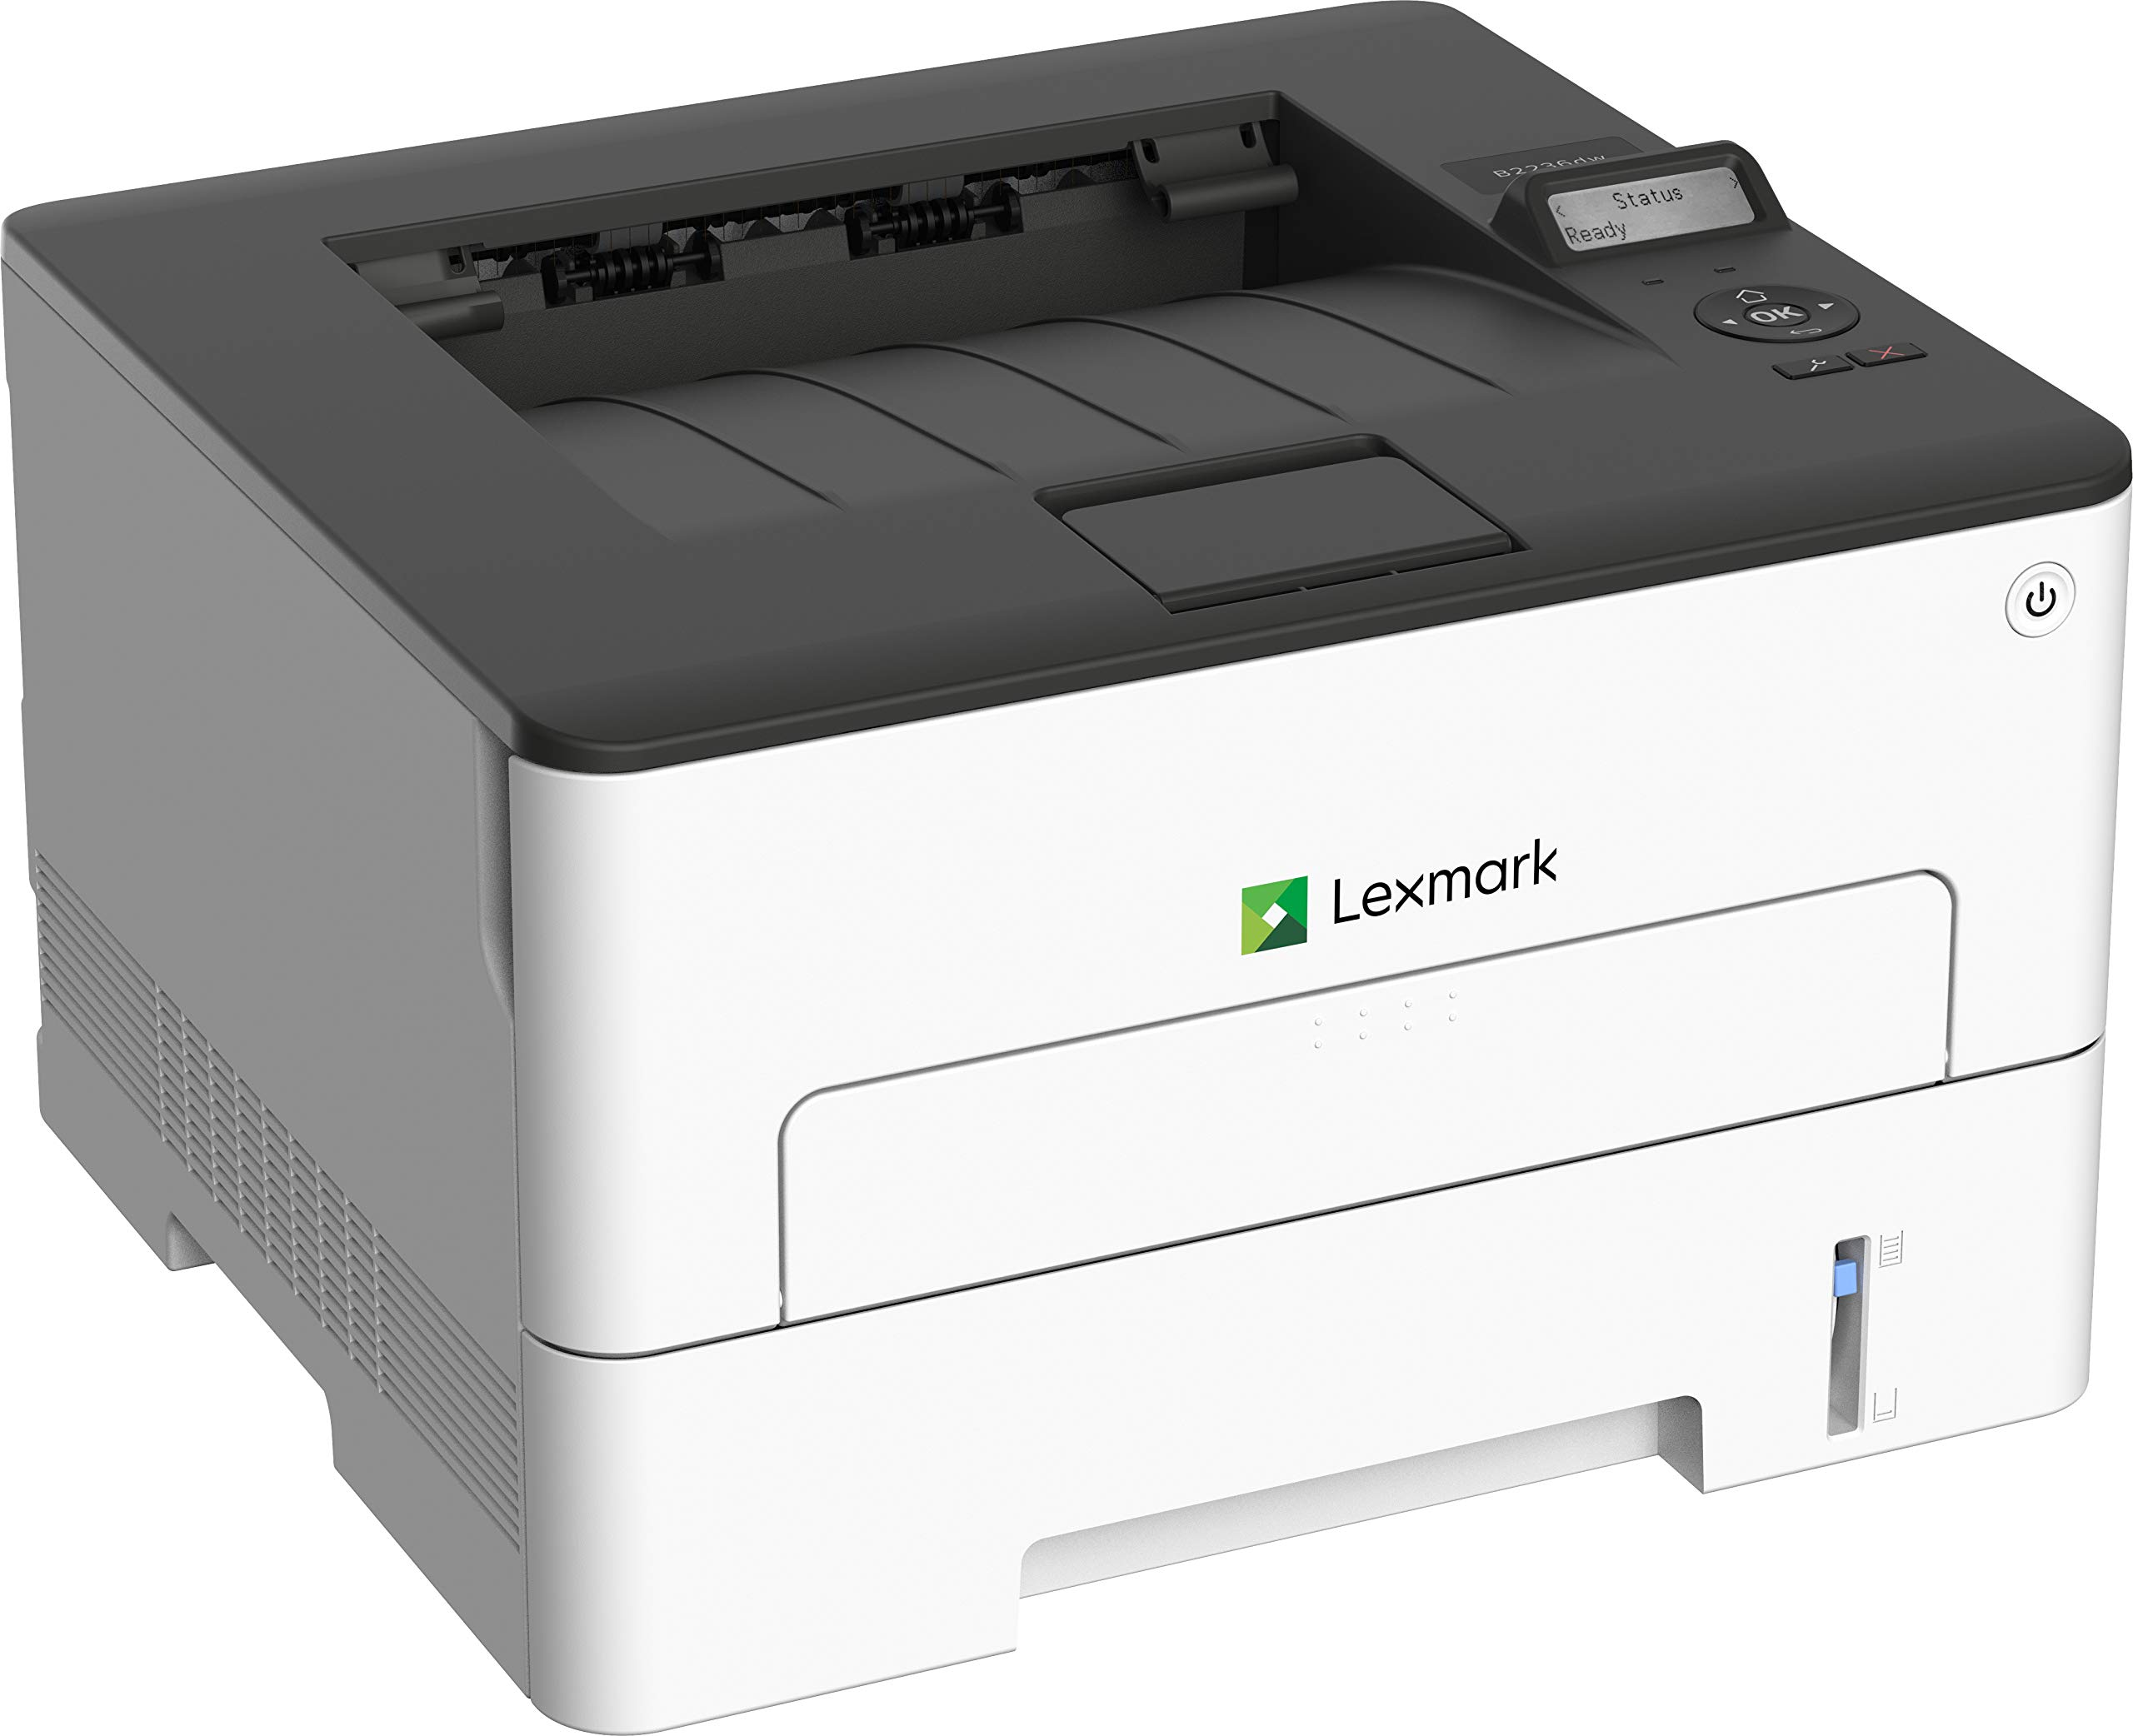 Lexmark B2236dw Monochrome Compact Laser Printer, Duplex Printing, Wireless Network Capabilities (18M0100) by Lexmark (Image #5)